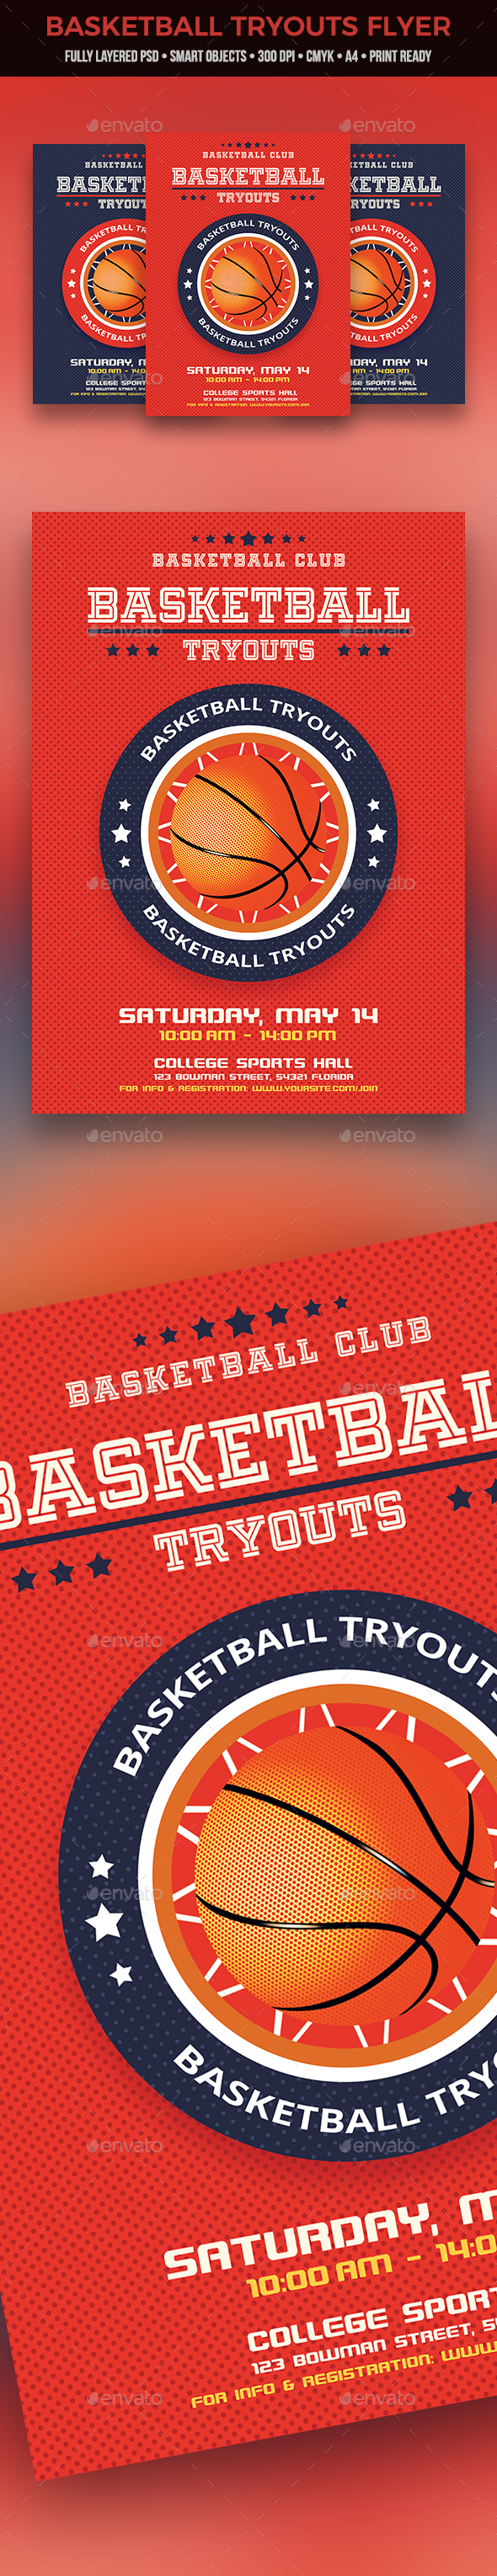 Basketball Tryouts Flyer - Sports Events